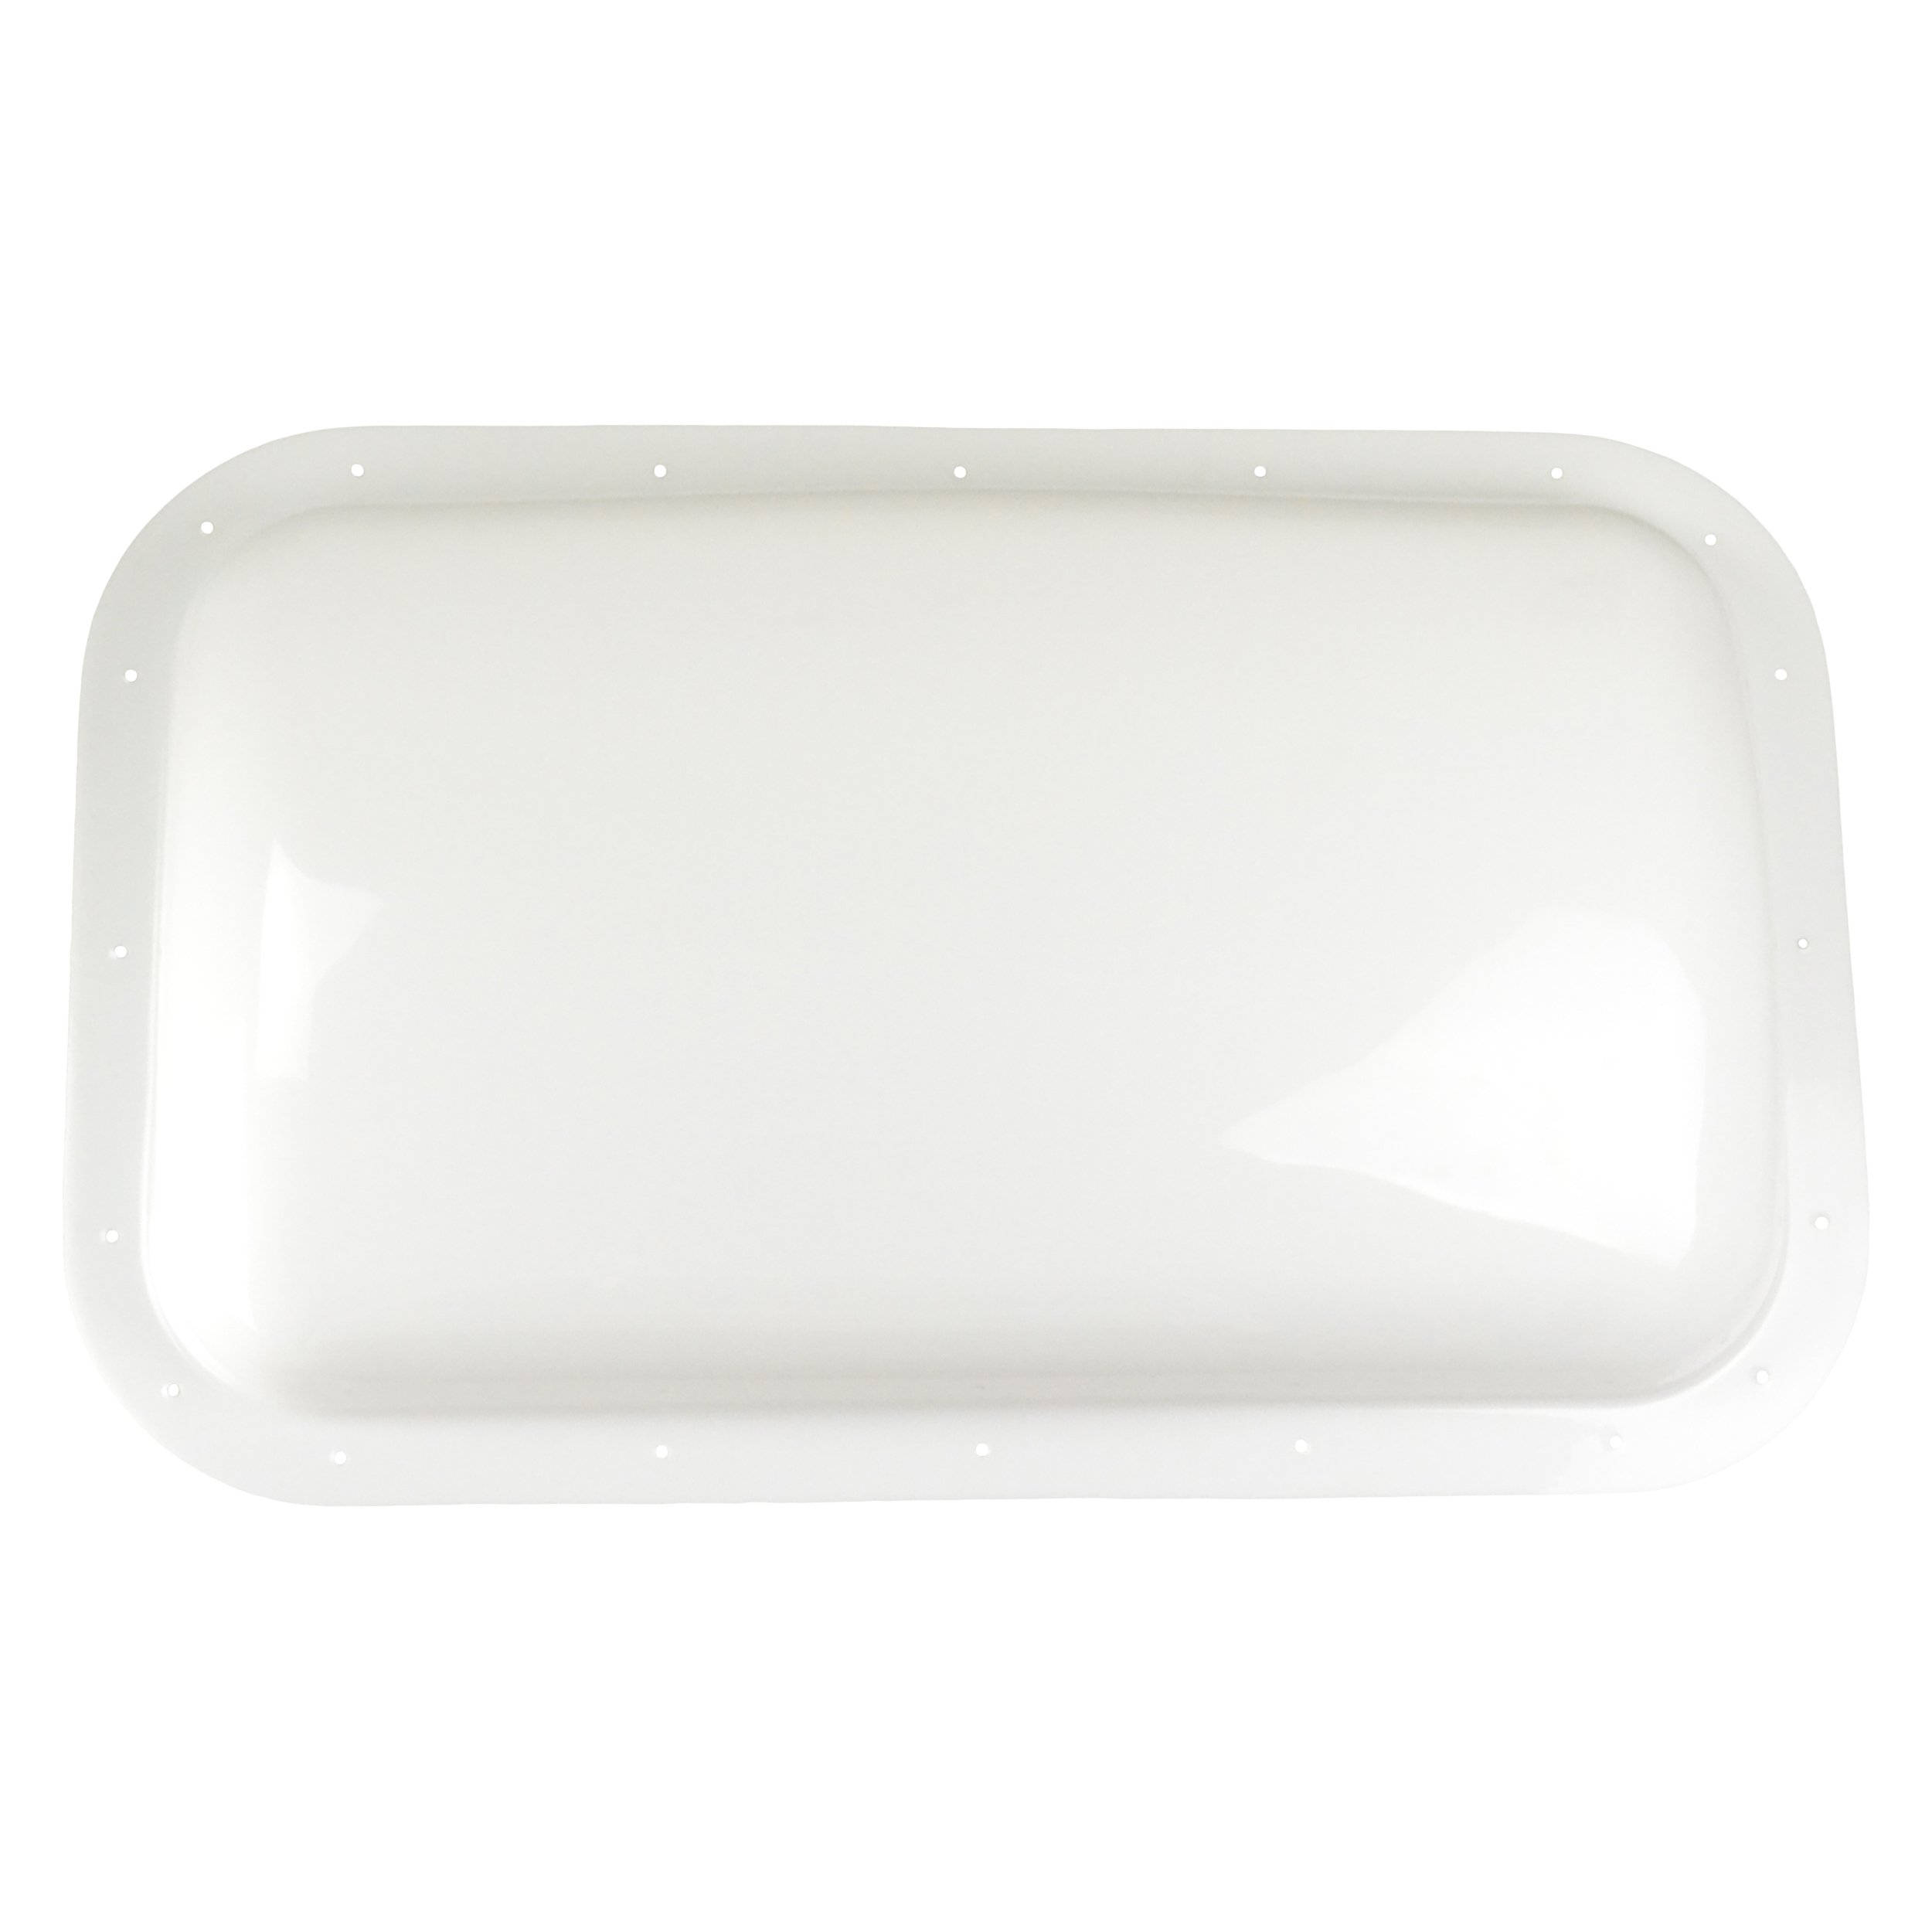 Winnebago Industries 122192-01-02A Outer Skylight Panel 18.6 Inch by 30 Inch